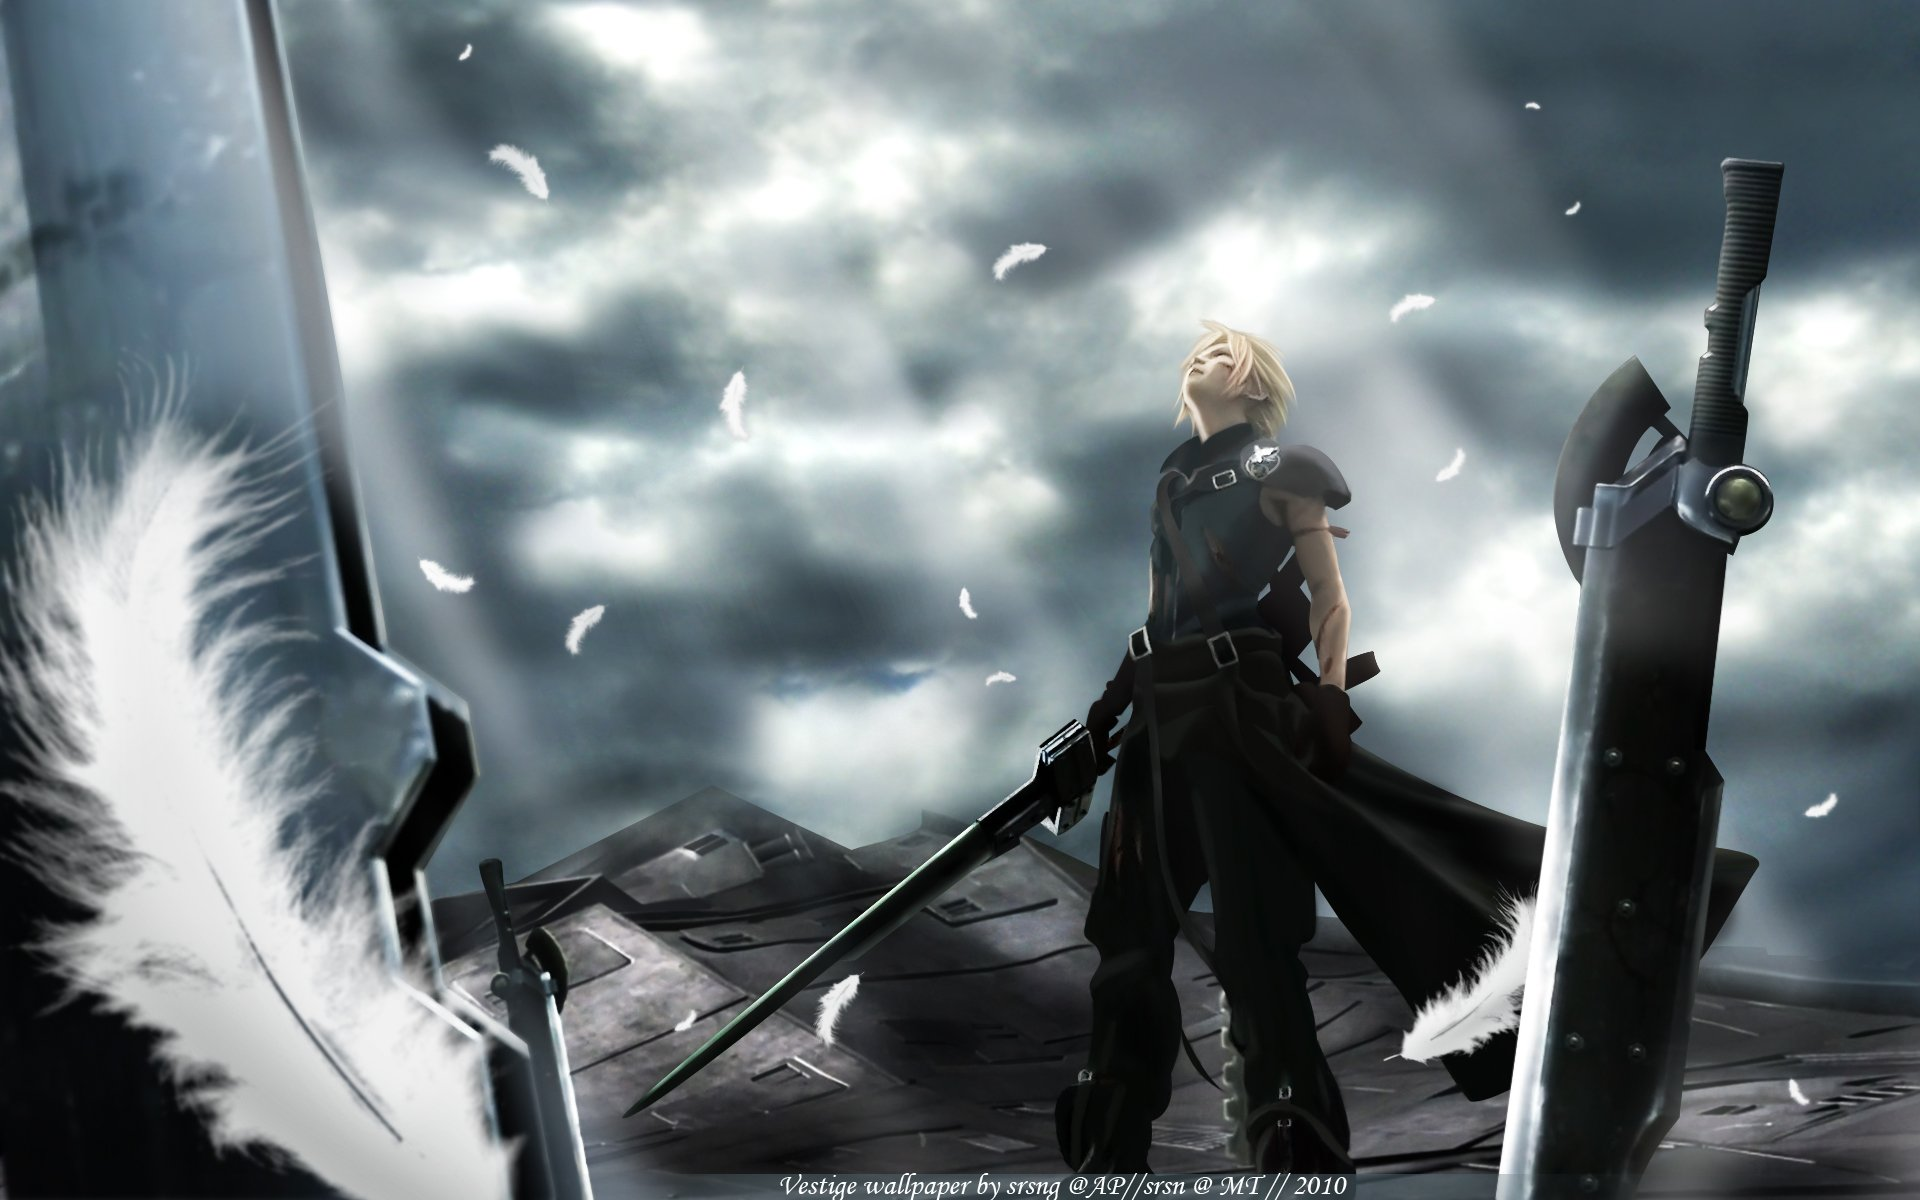 89 final fantasy vii advent children hd wallpapers backgrounds - Final Fantasy Vii Advent Children Desktop Wallpaper